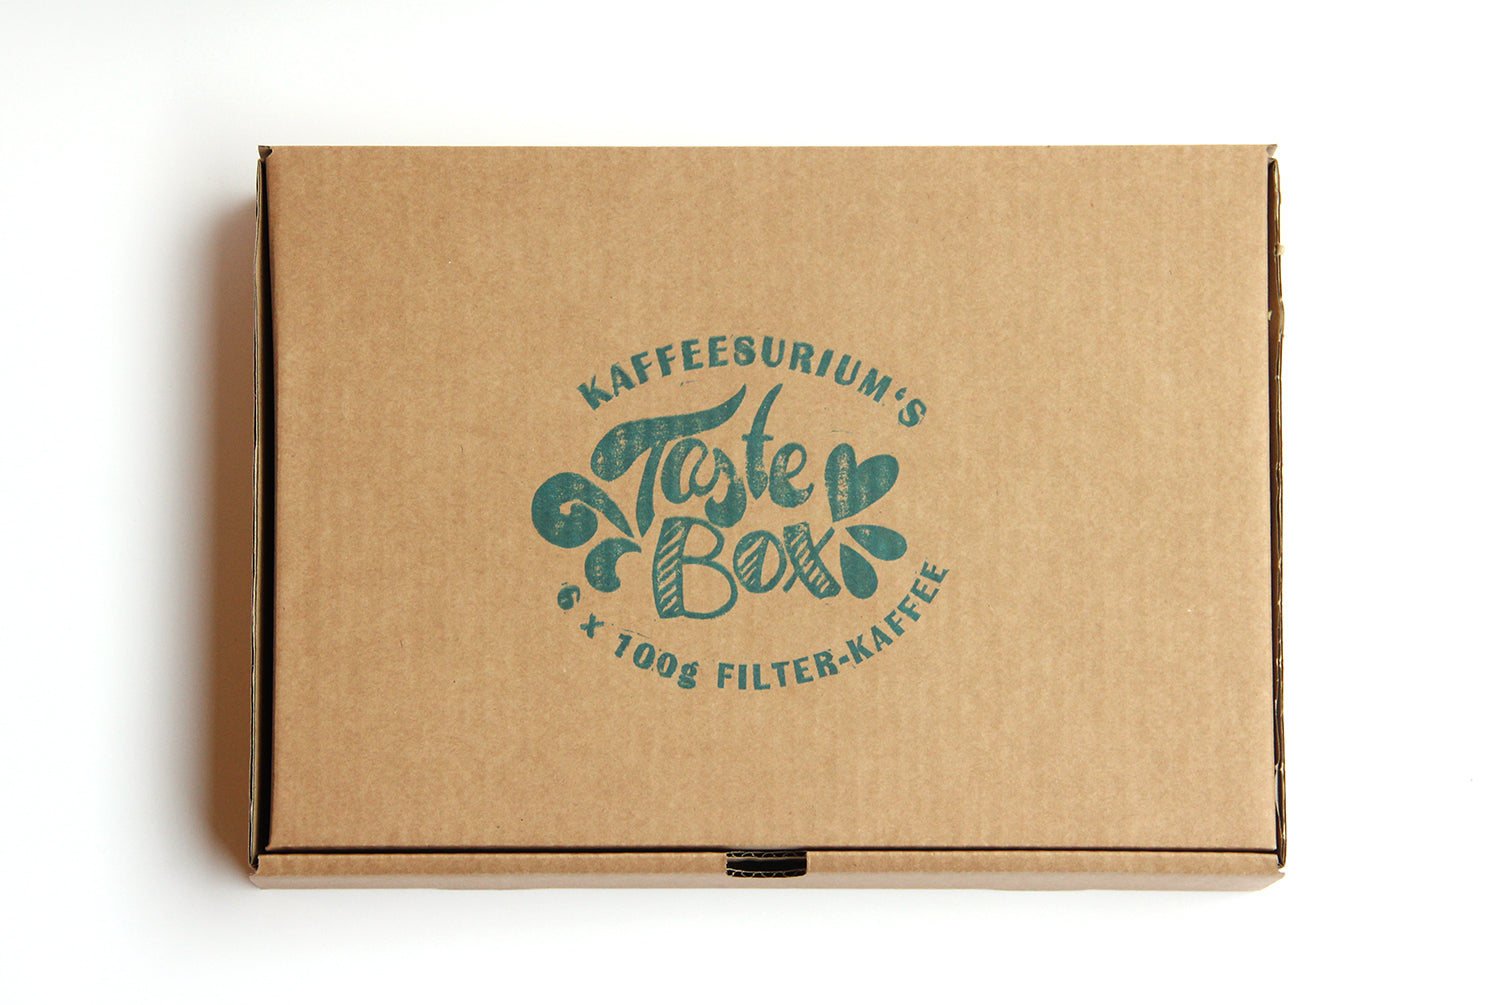 "Kaffeesurium's Taste Box ""Filter-Kaffee"""